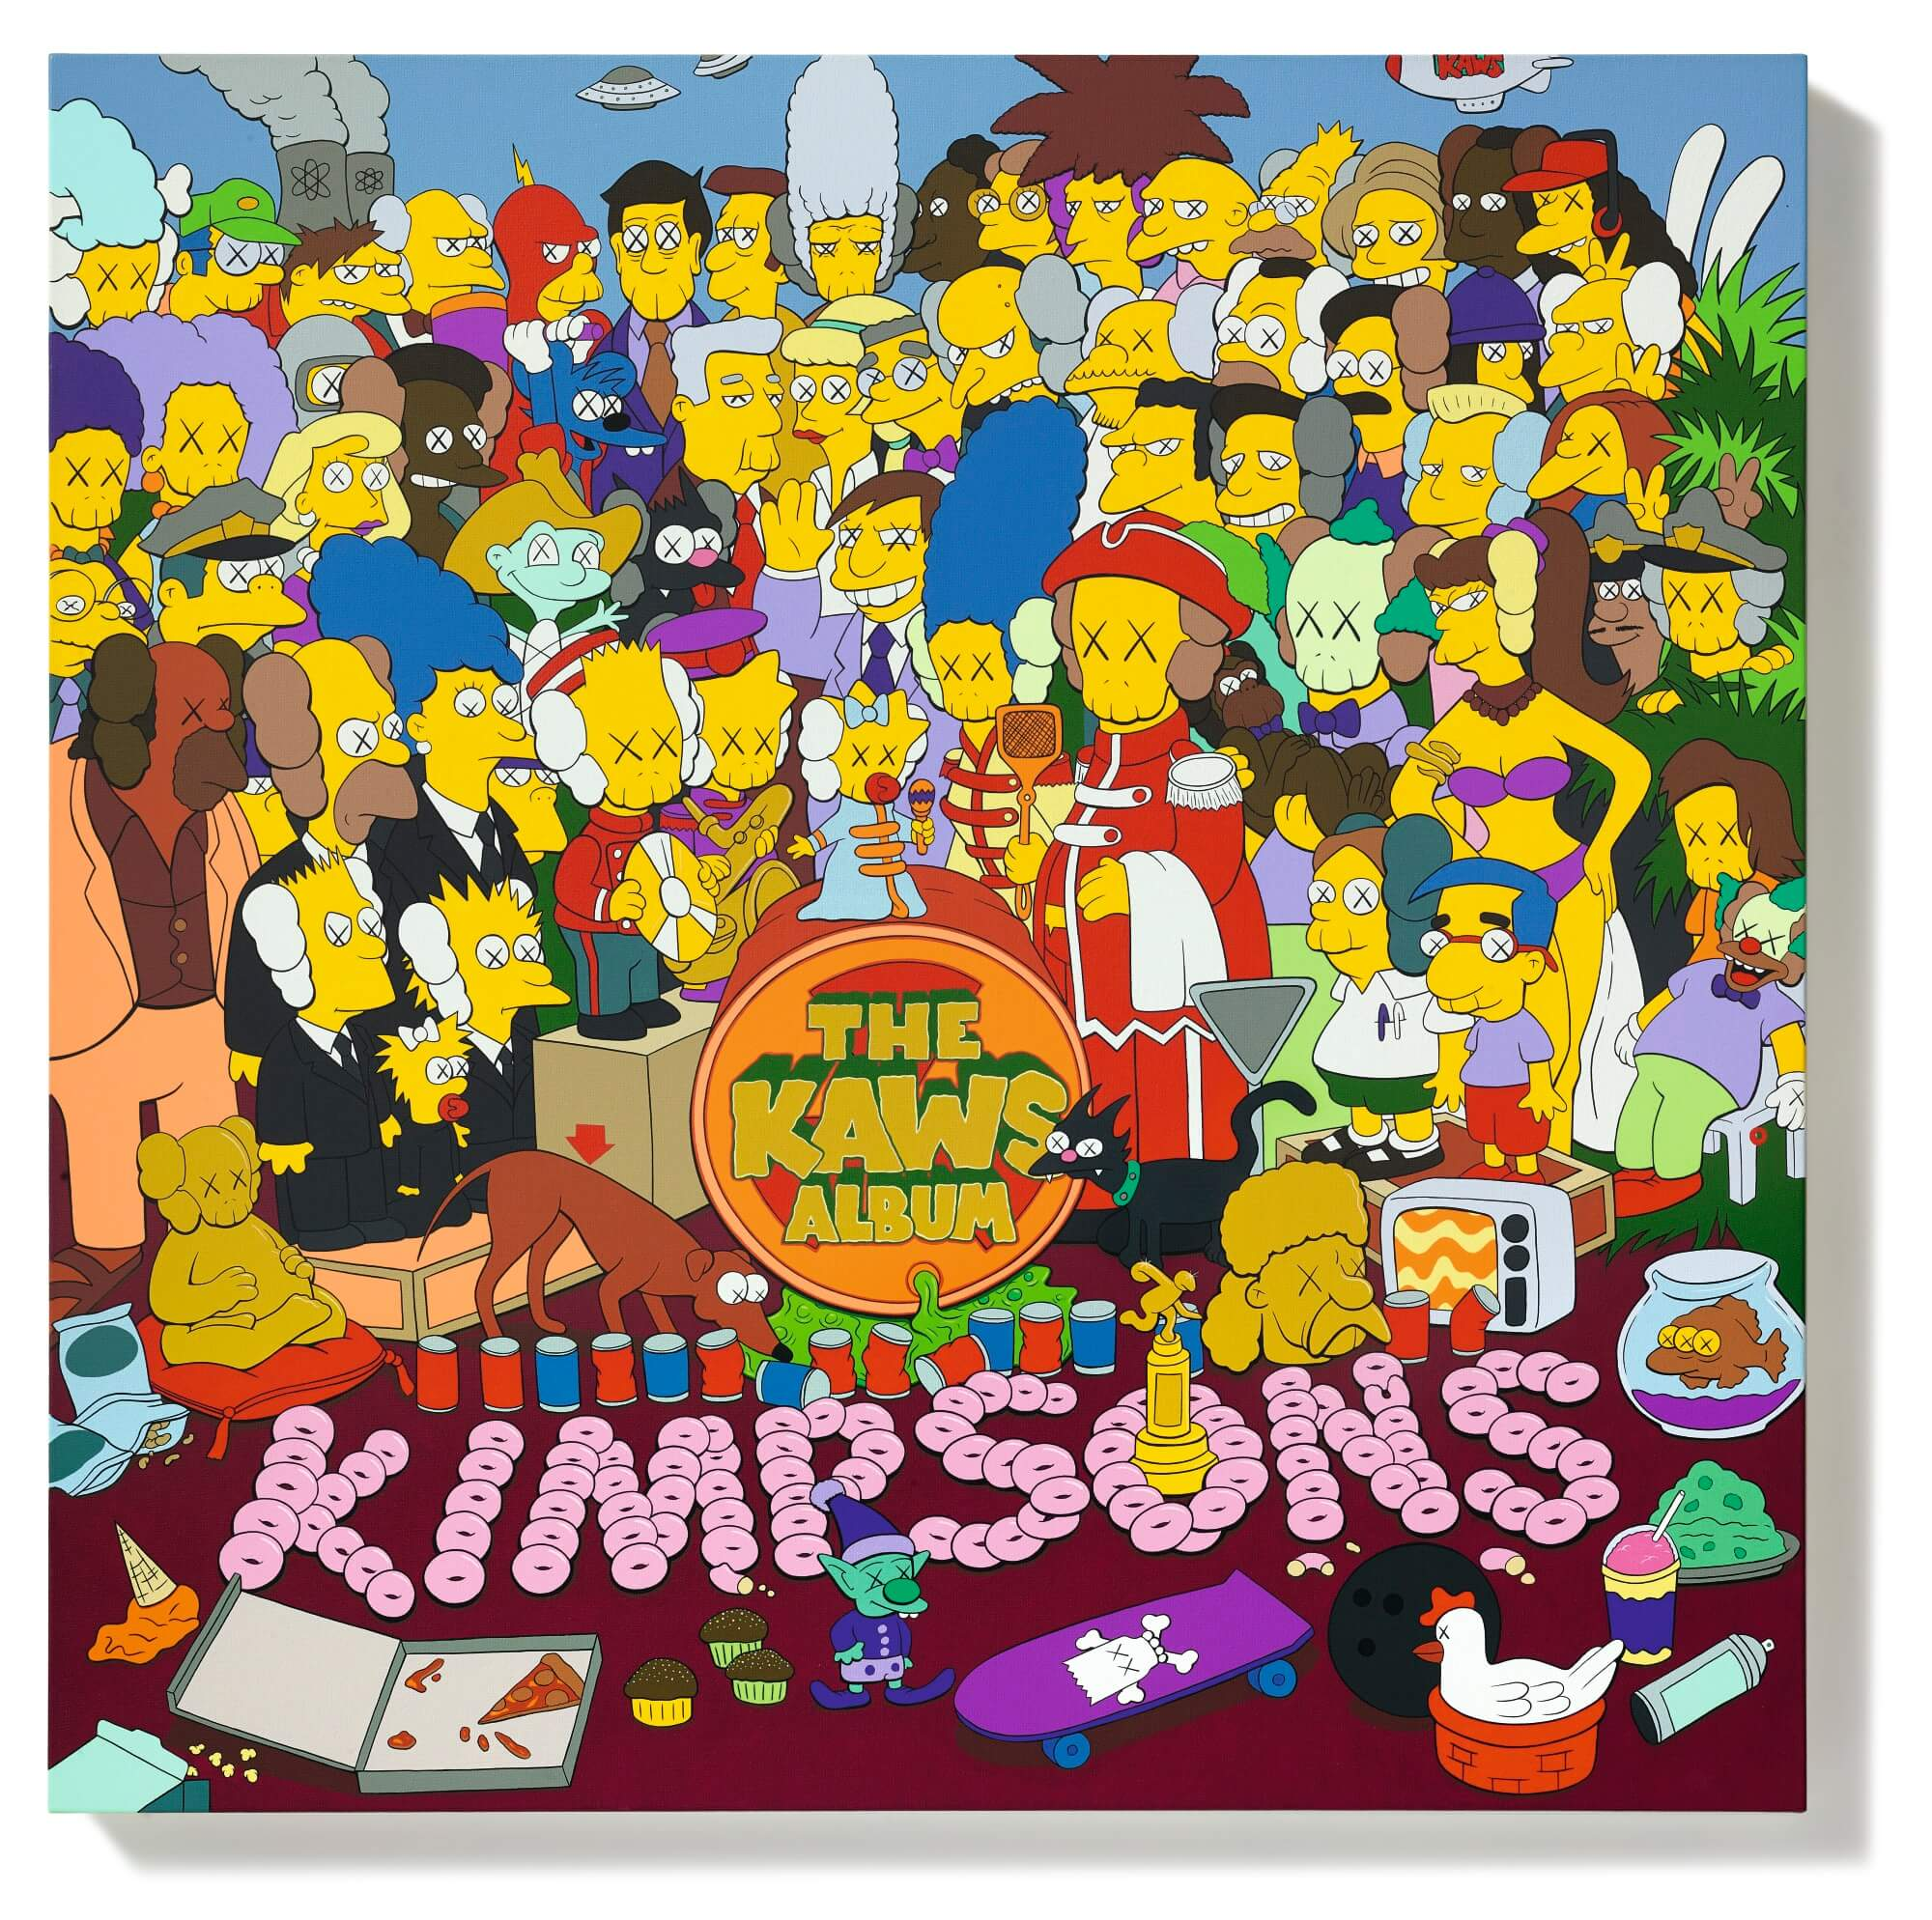 The KAWS Album KIMPSONS